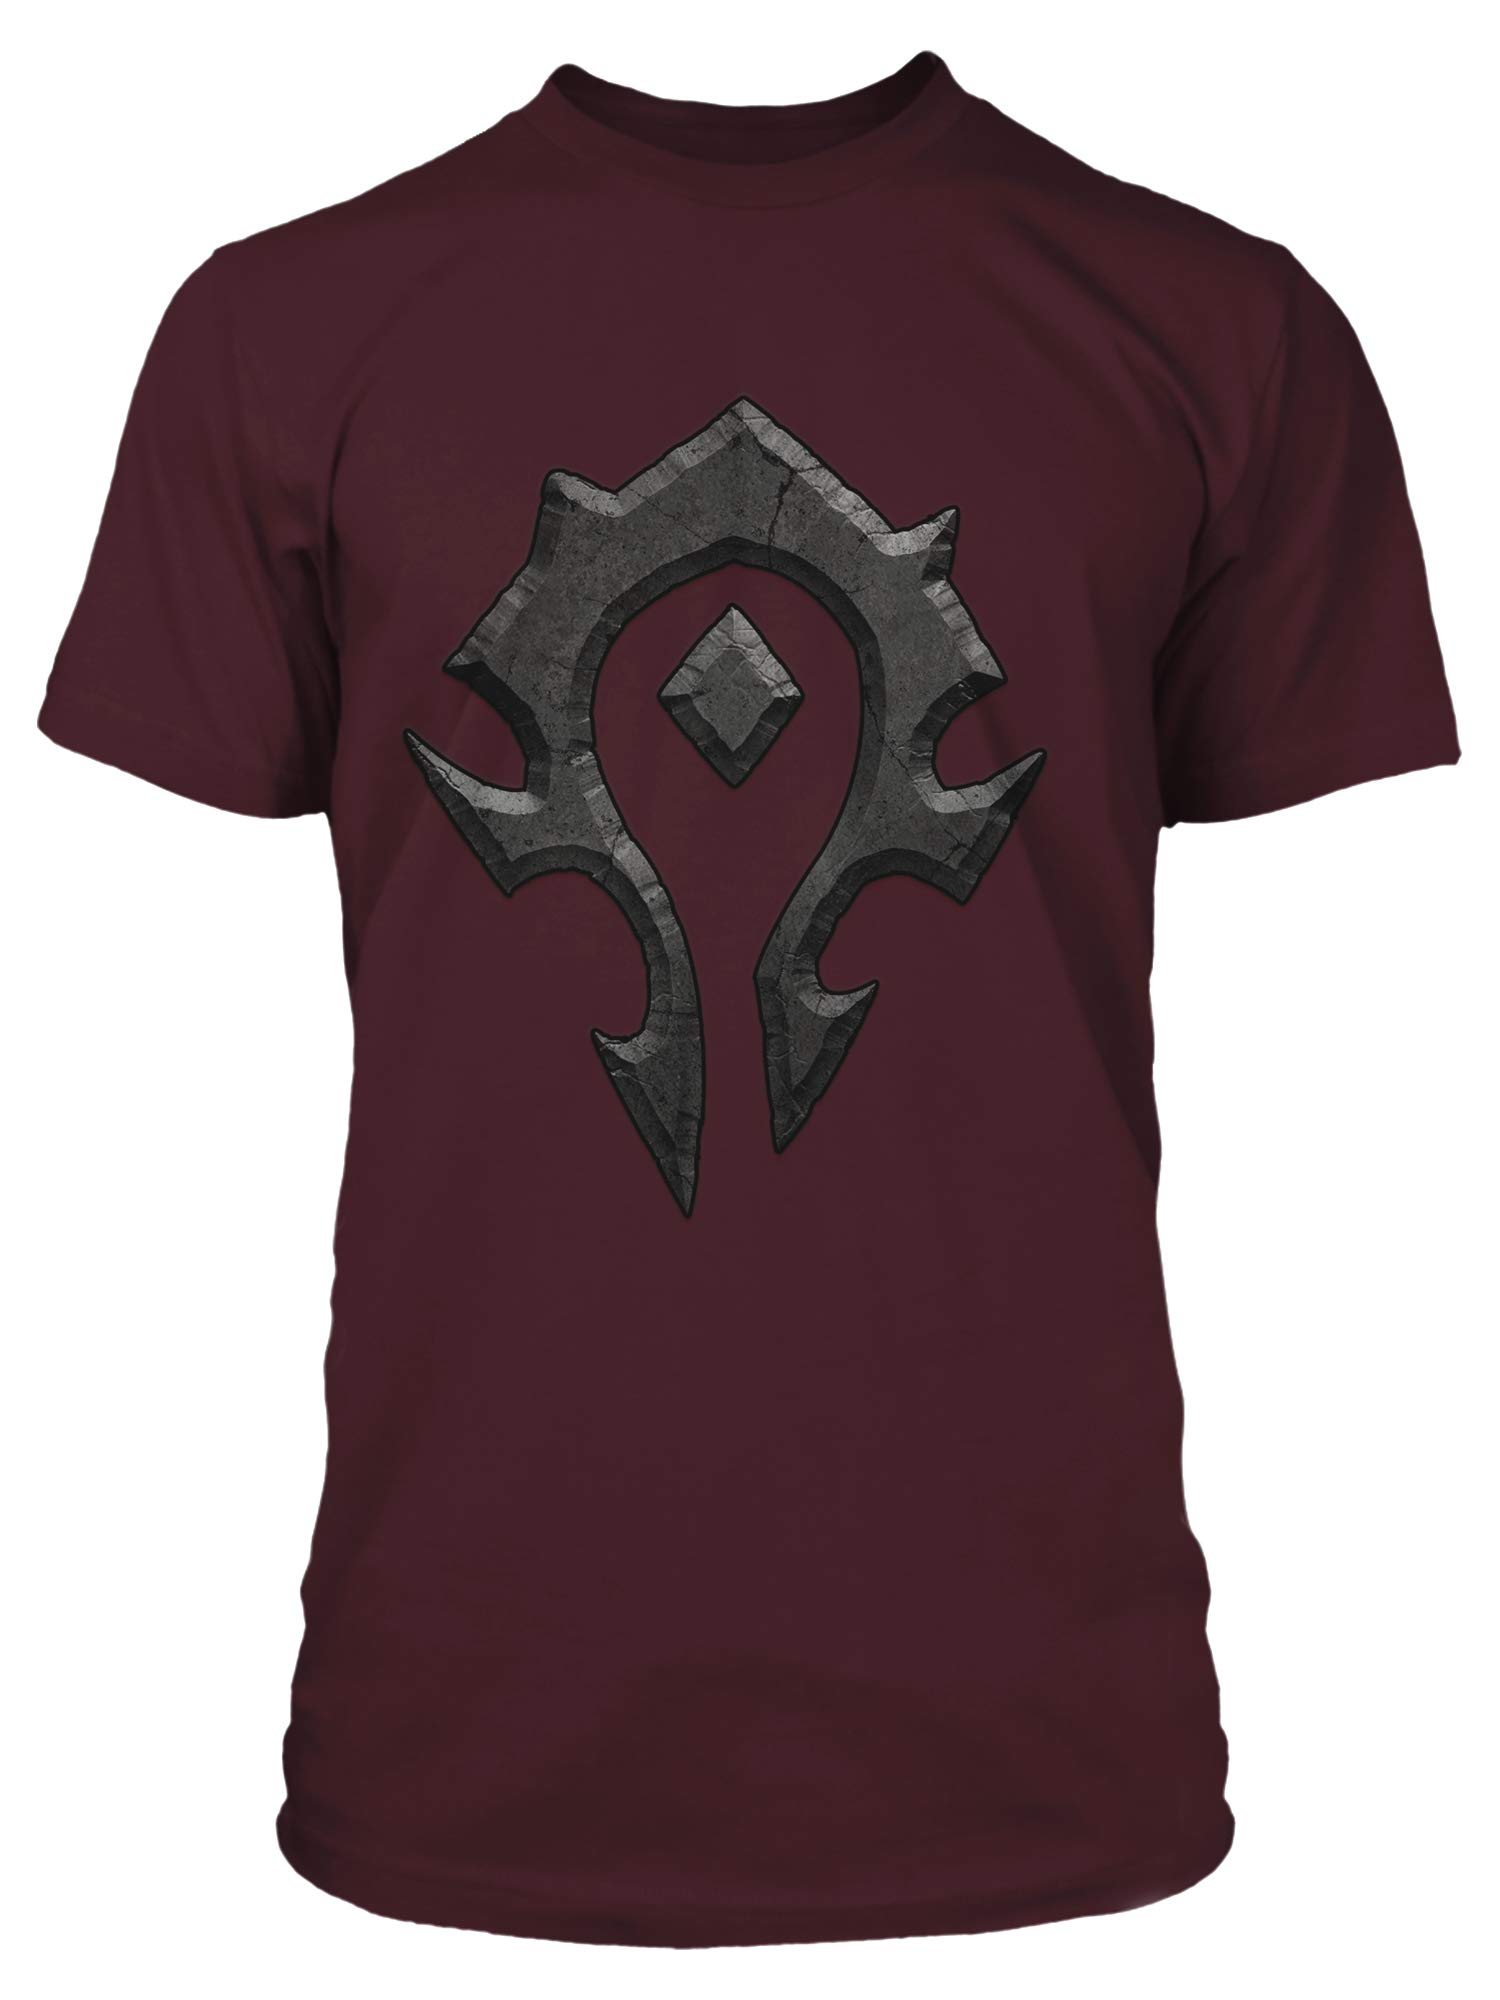 JINX World of Warcraft Horde Logo Men's Gamer Tee Shirt